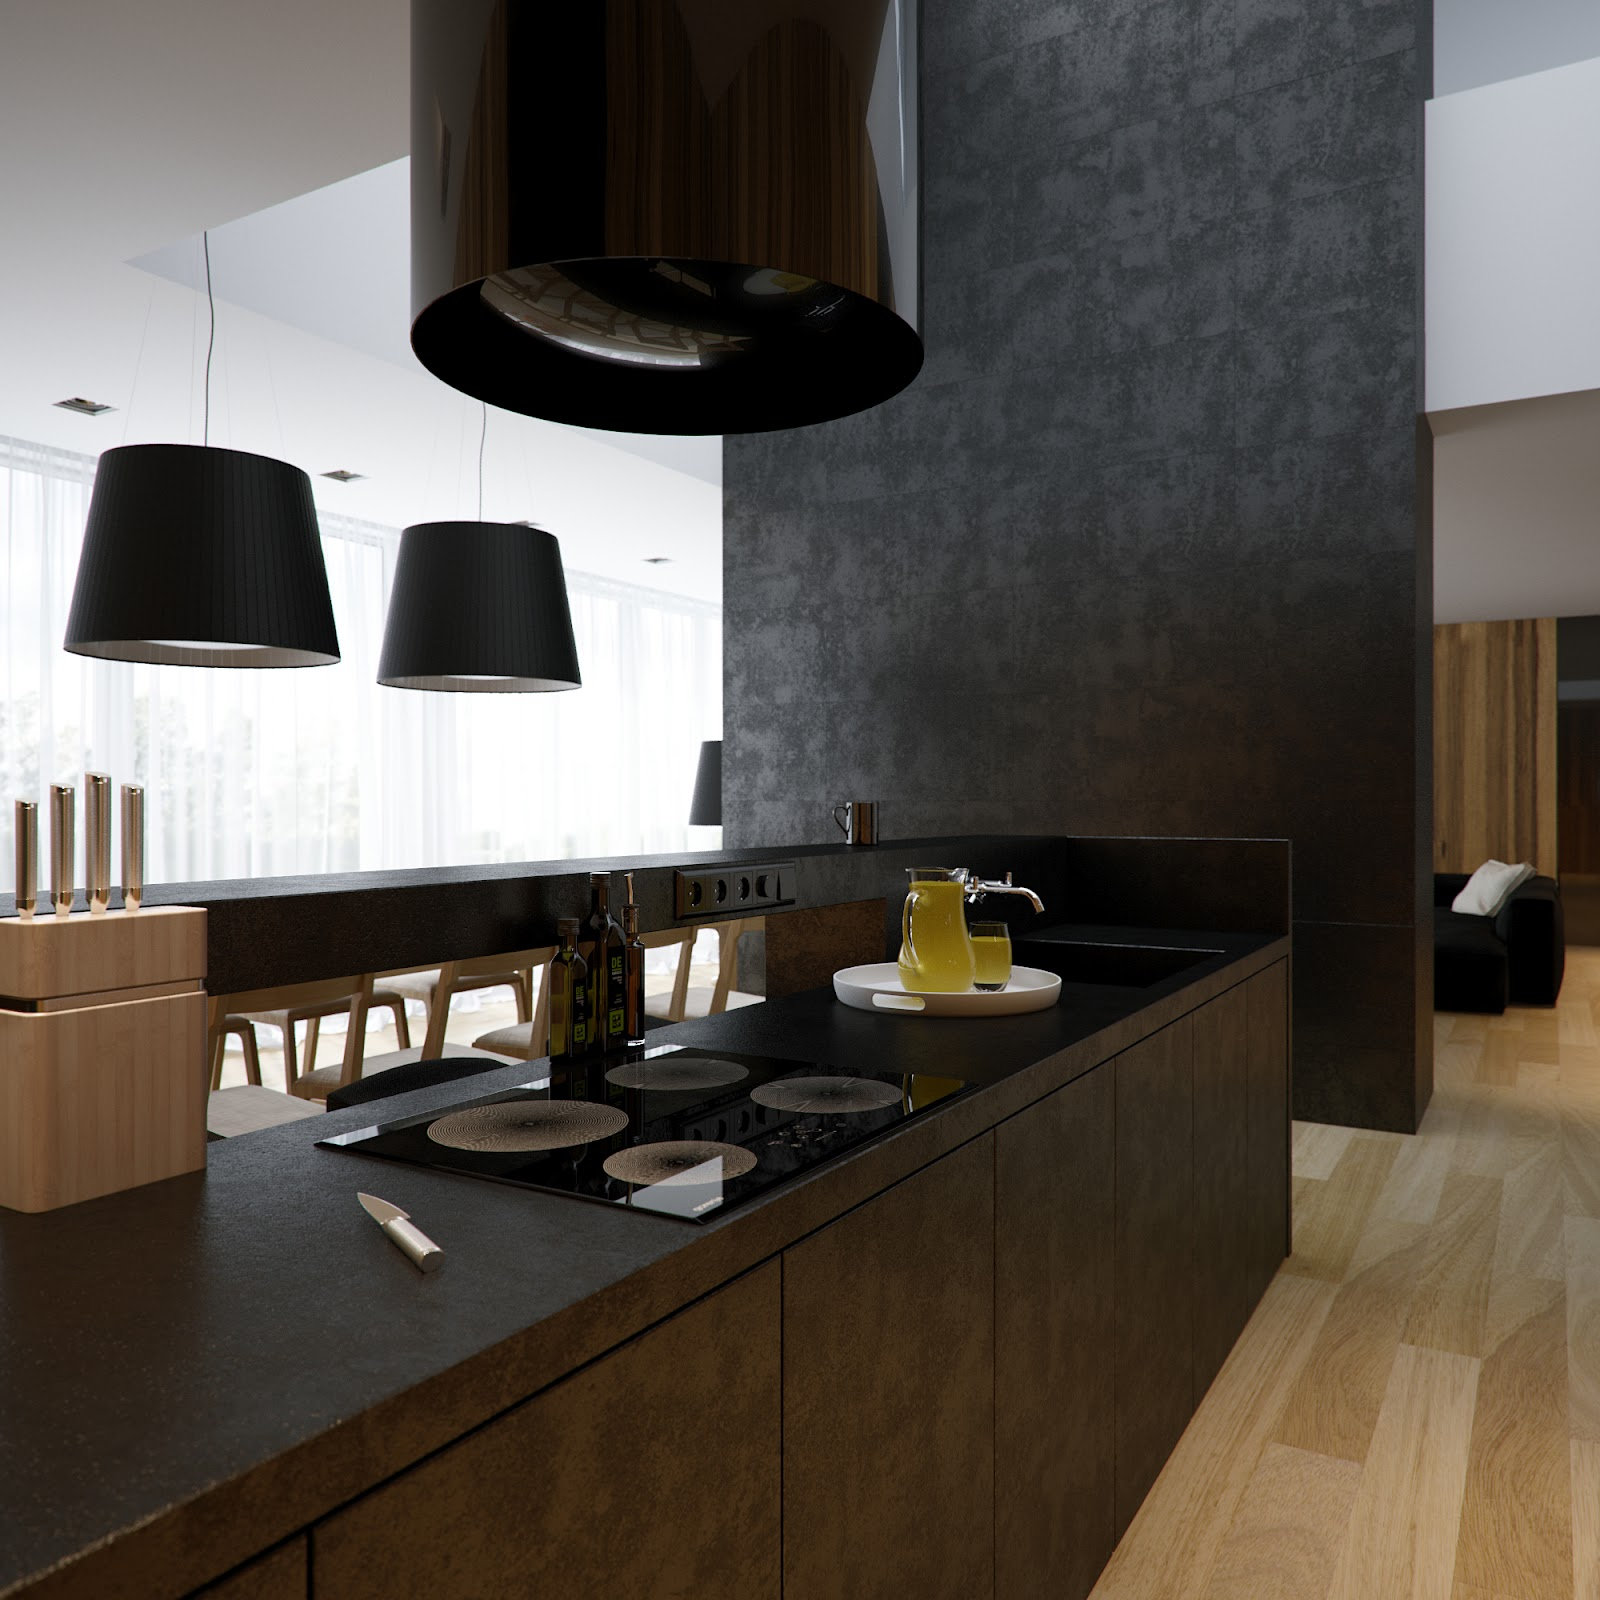 Black white kitchen chimney extractor fan  Interior